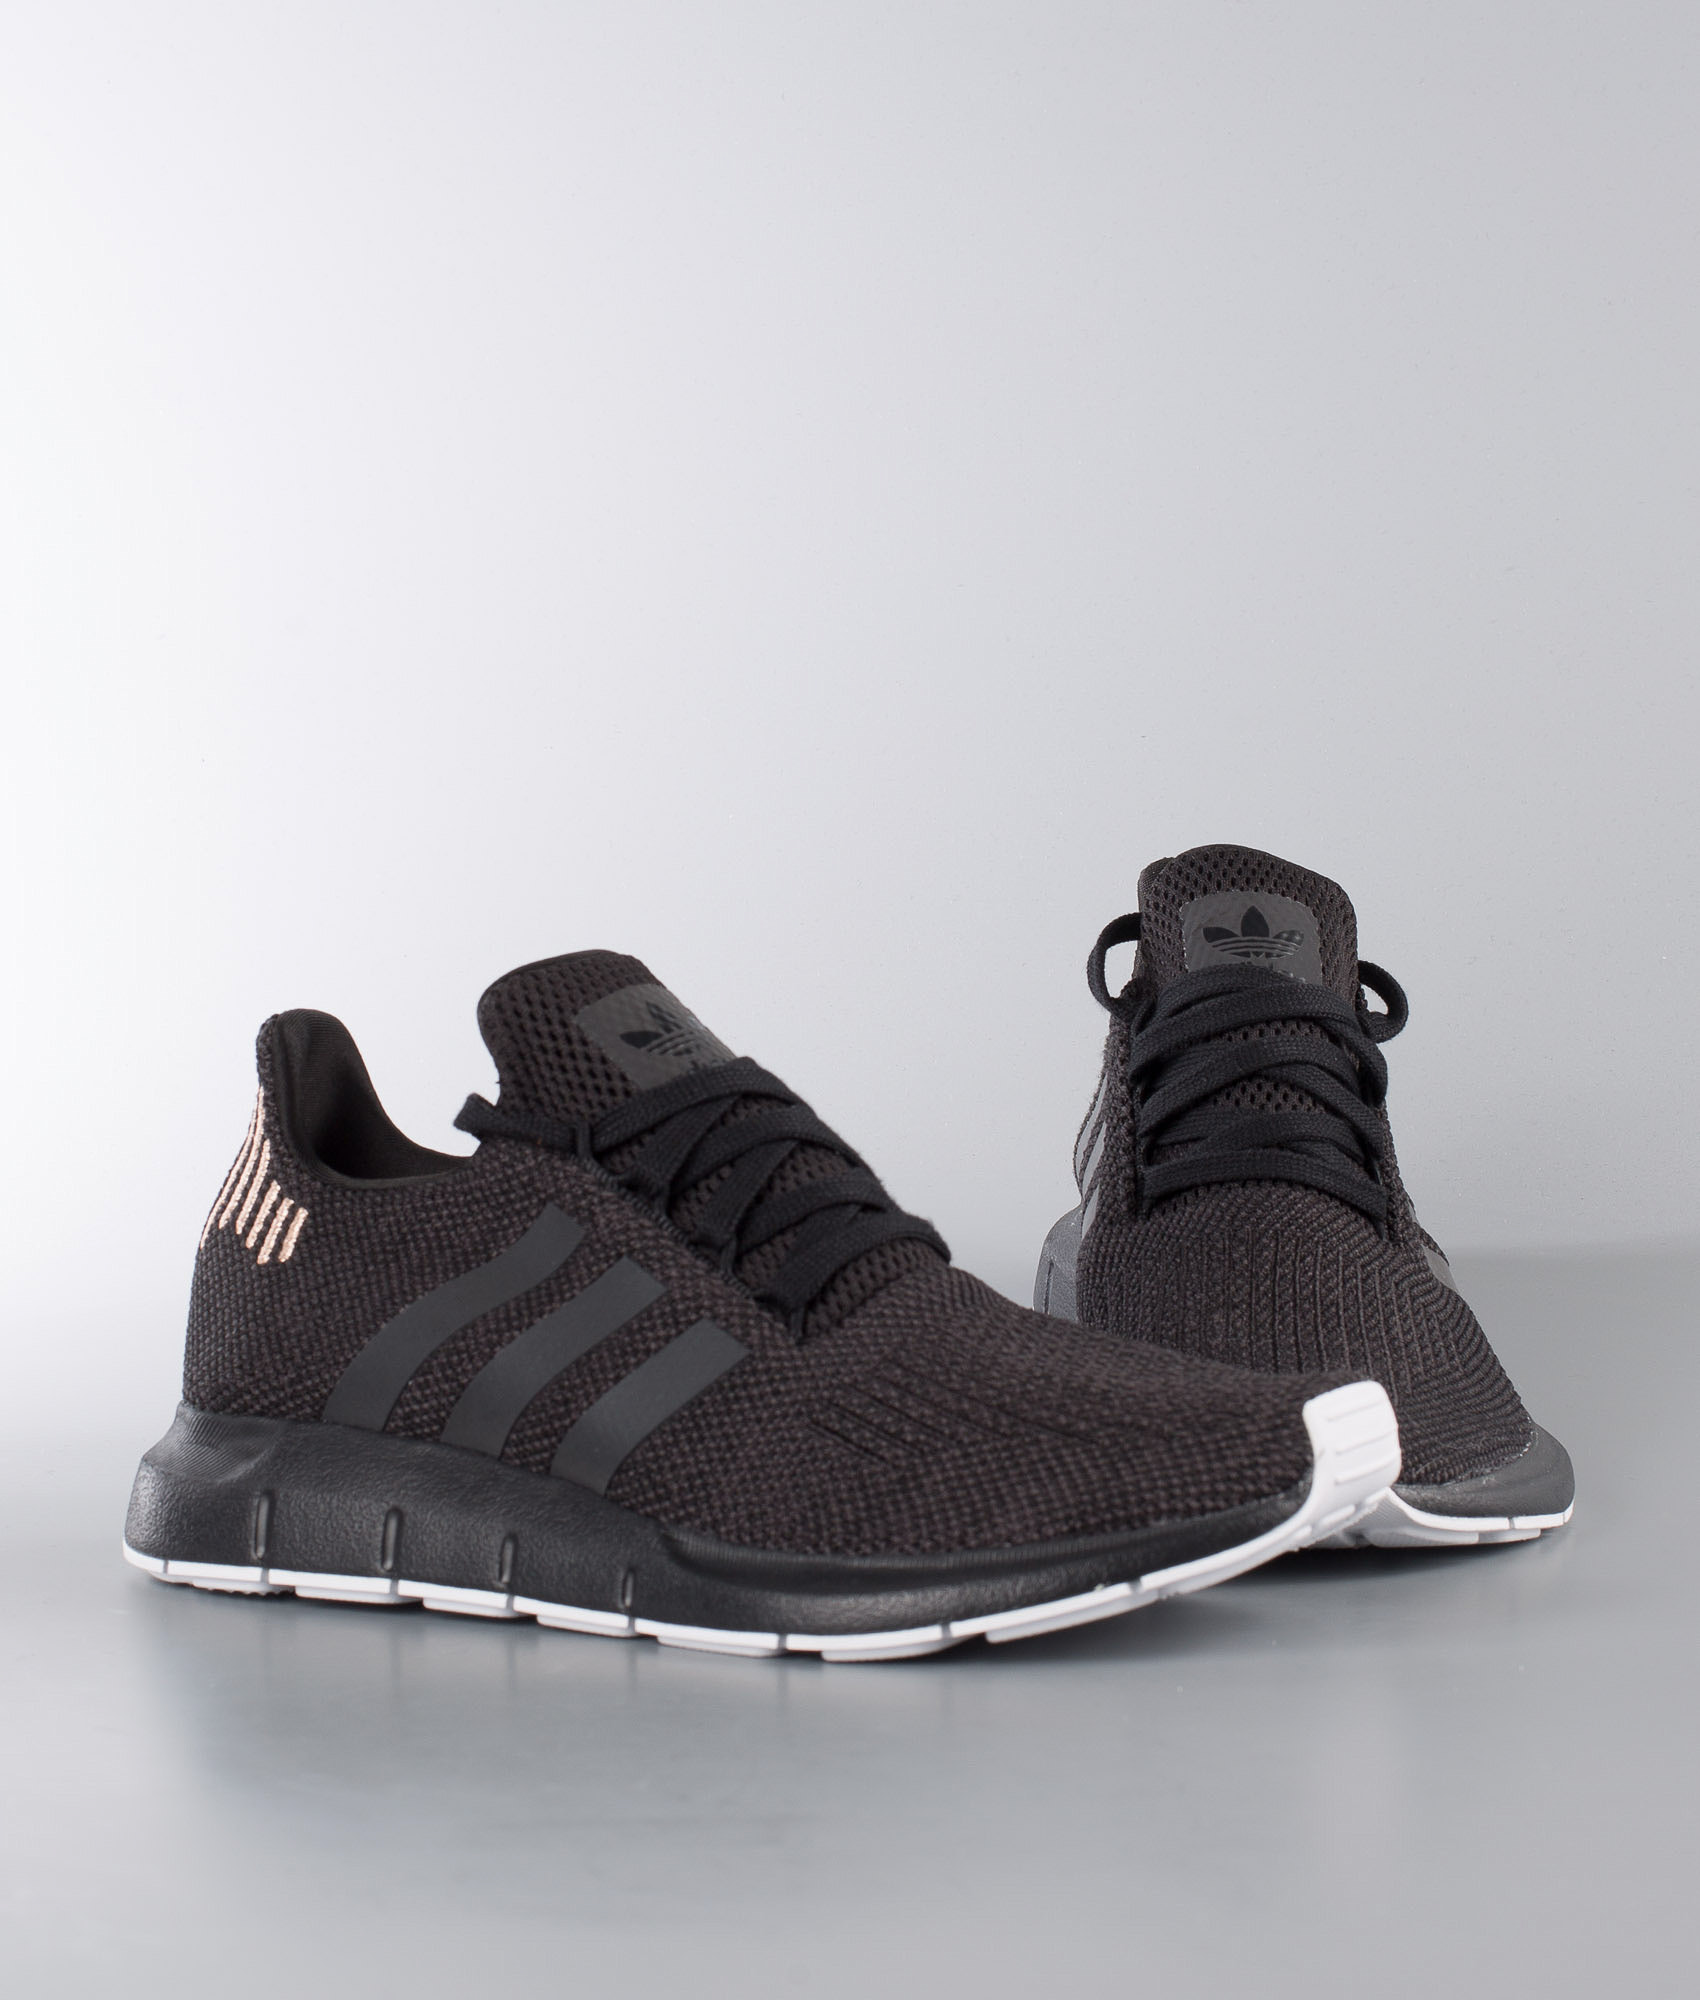 a43ff7fe7 Adidas Originals Swift Run W Shoes Core Black Carbon Ftwr White ...